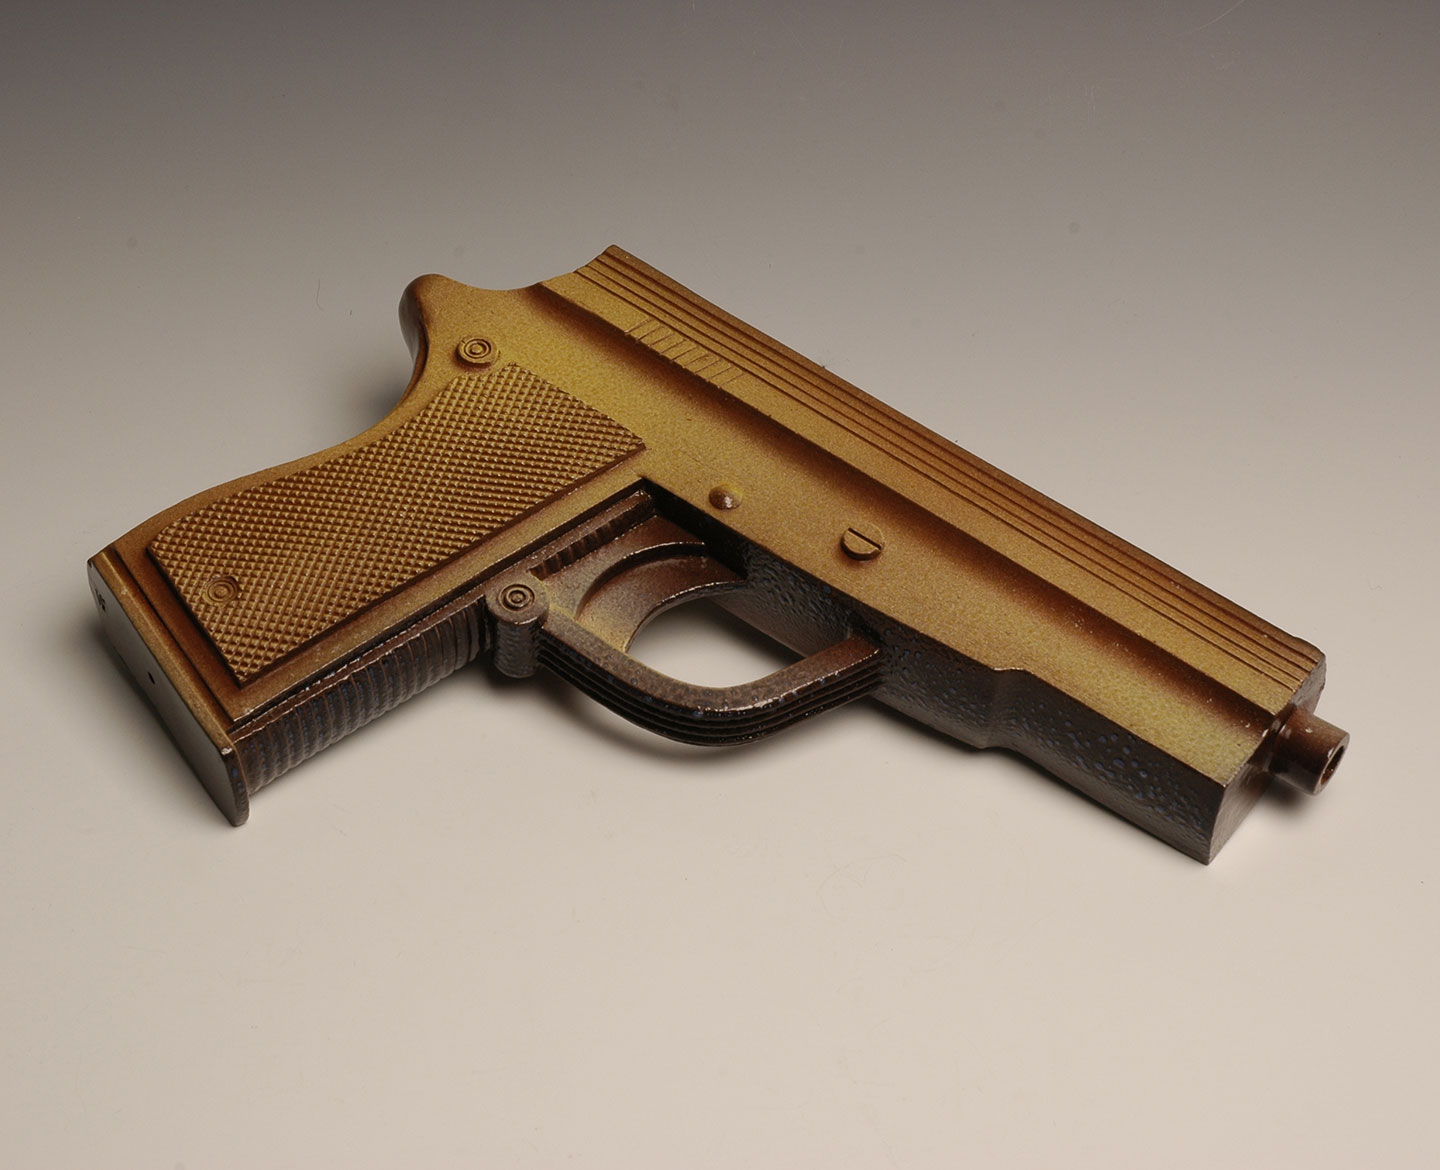 Potgun 2, an oversized pistol, ceramic, length 30cm